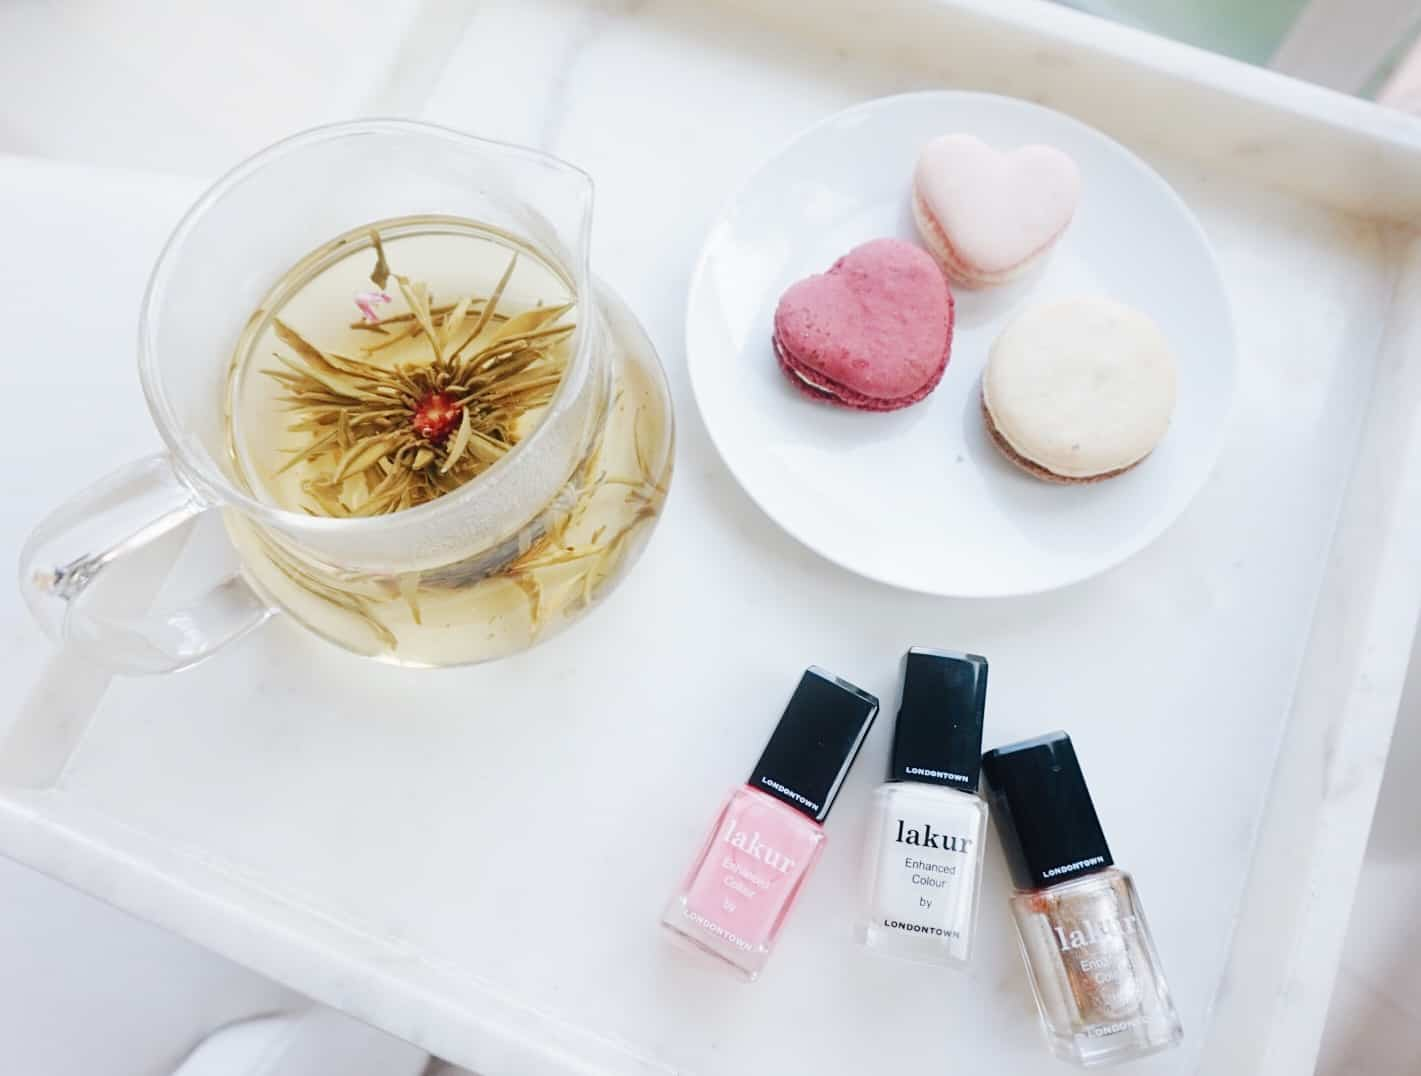 heart cookies on a plate, next to three bottles of nail polish. Enjoy tea while at The Ivy Spa.